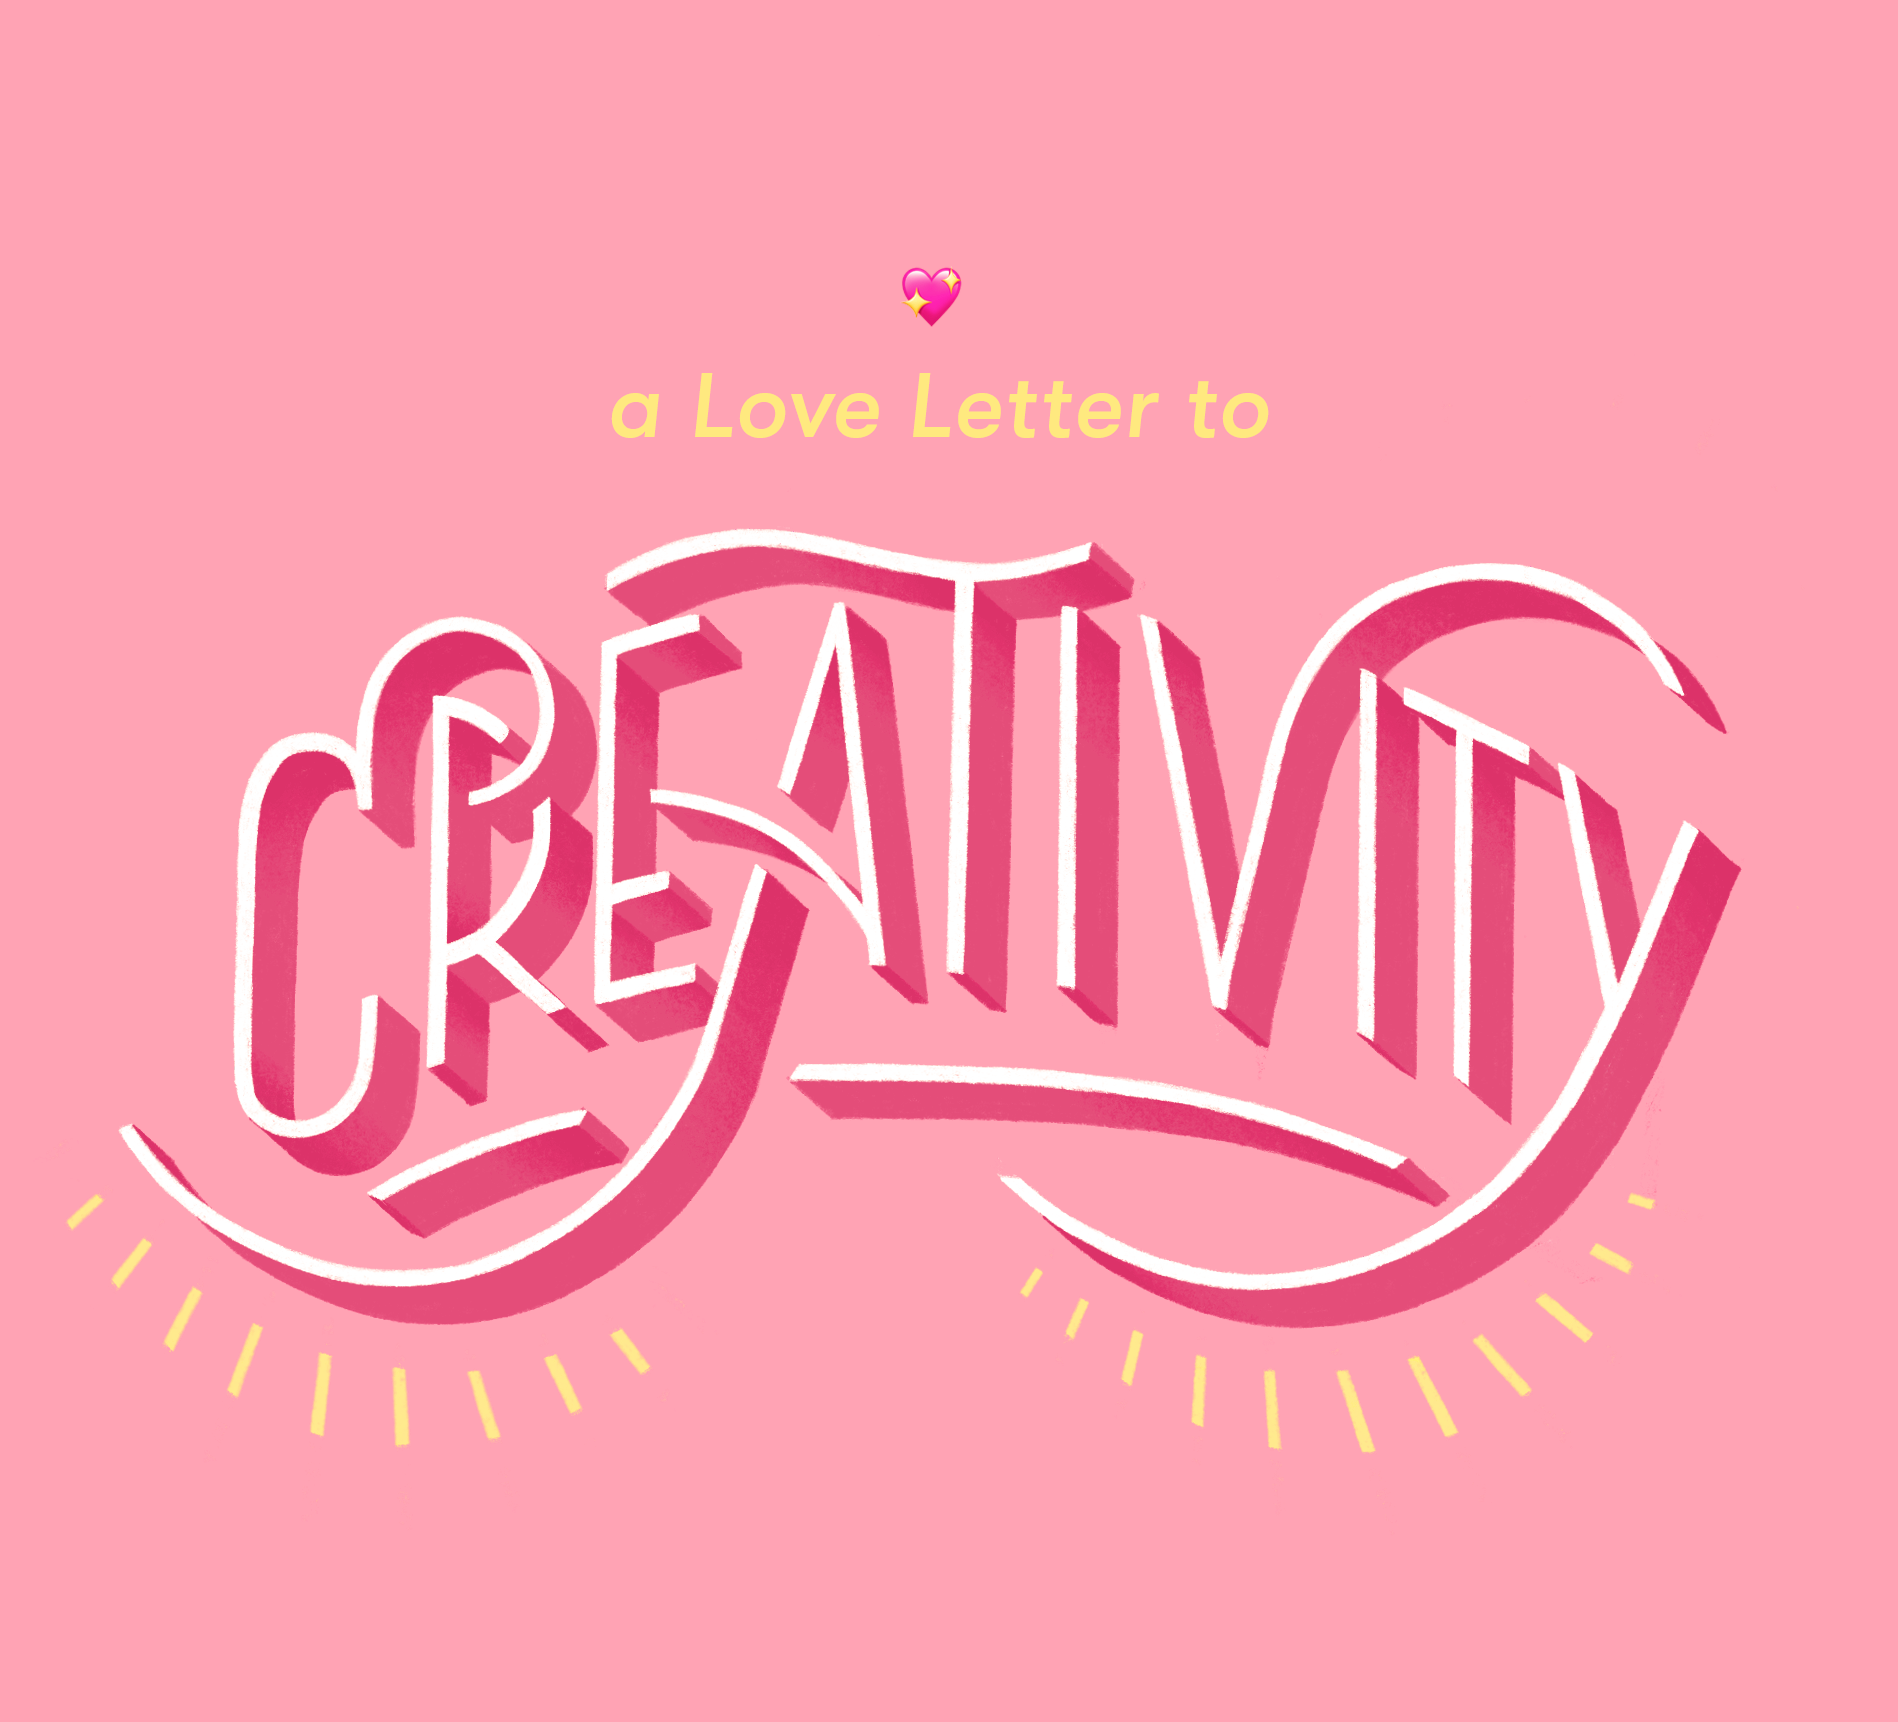 loveletter-creativity